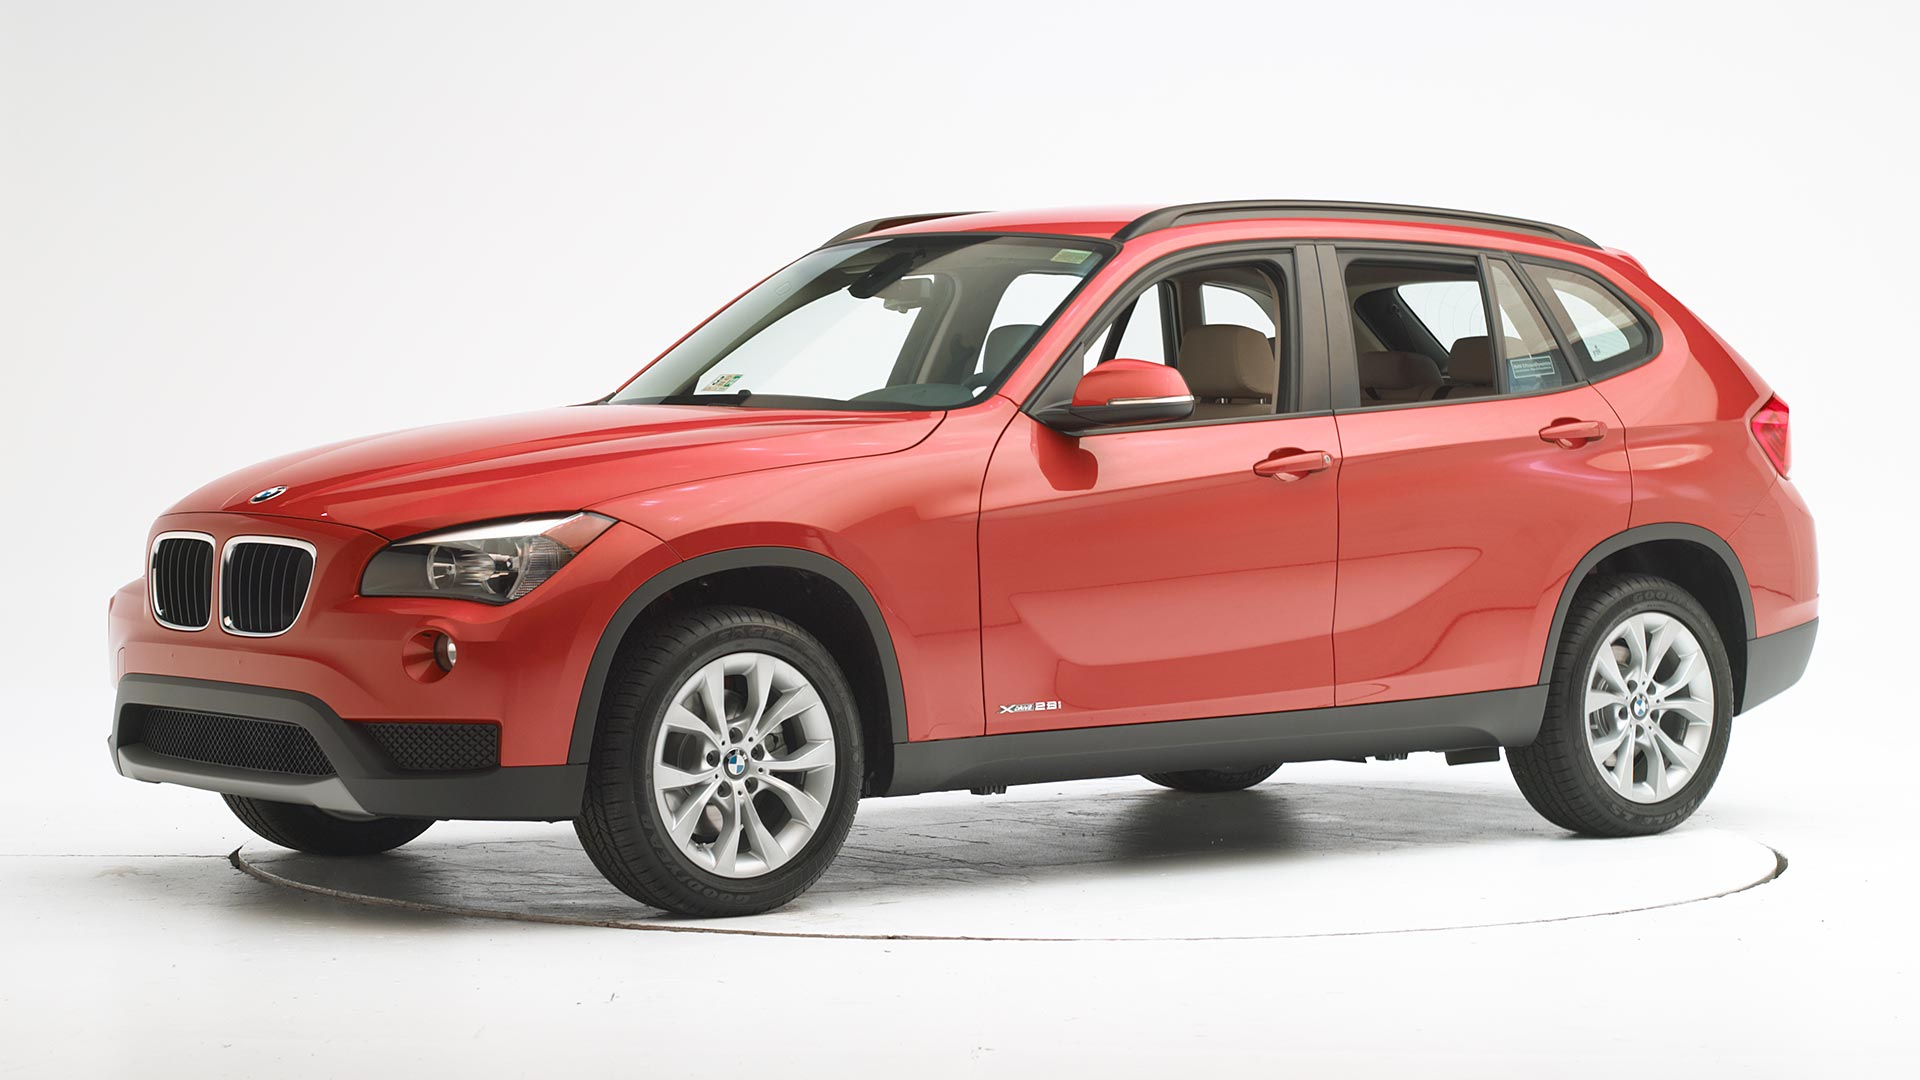 2014 BMW X1 4-door SUV